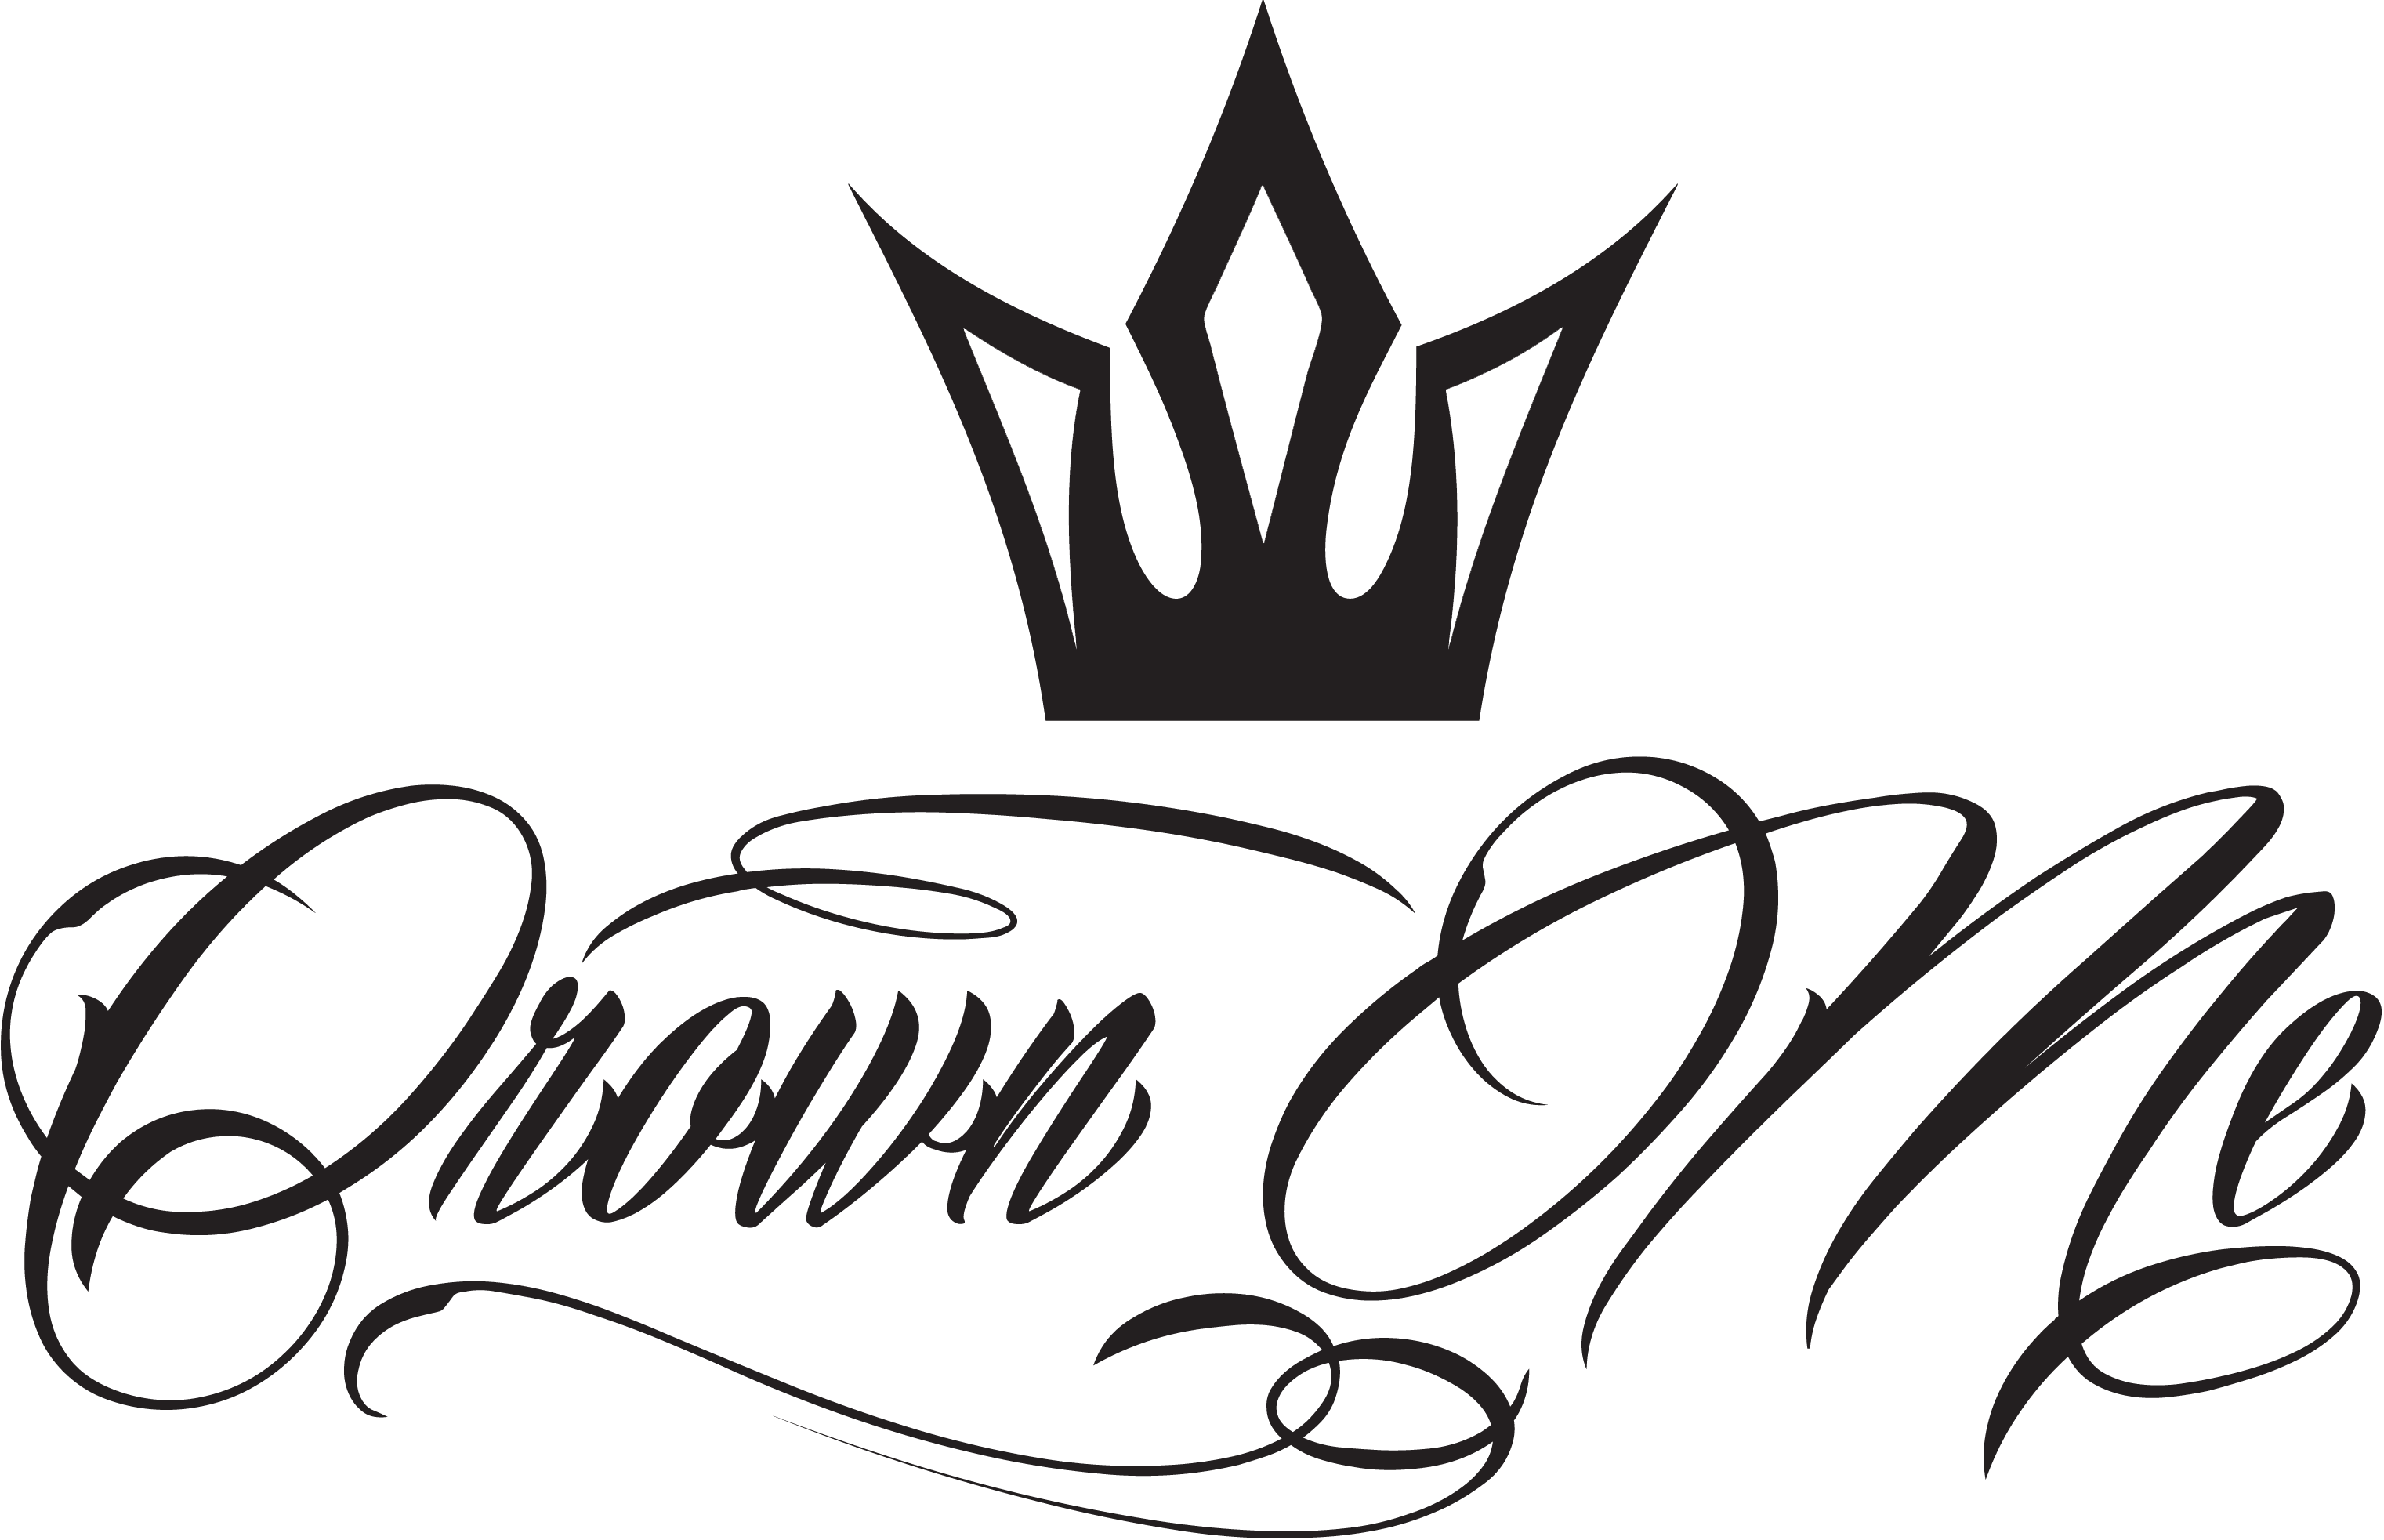 Crown Me Brands